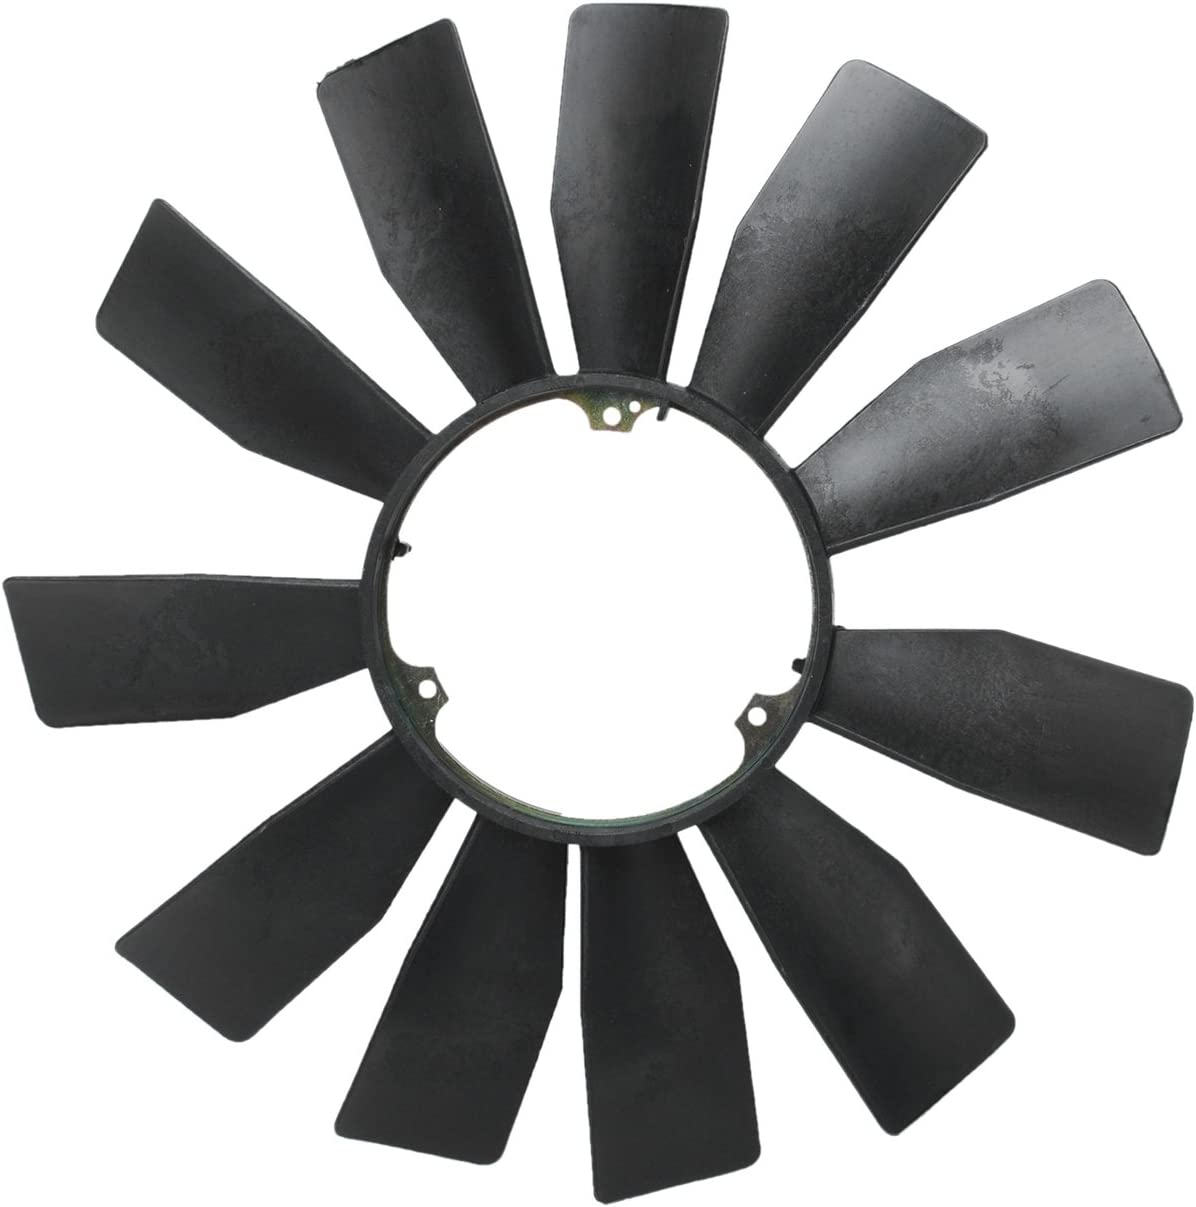 TOPAZ 6062000123 Engine Cooling 5% OFF Year-end annual account Fan Mercedes-Be for Blade Clutch